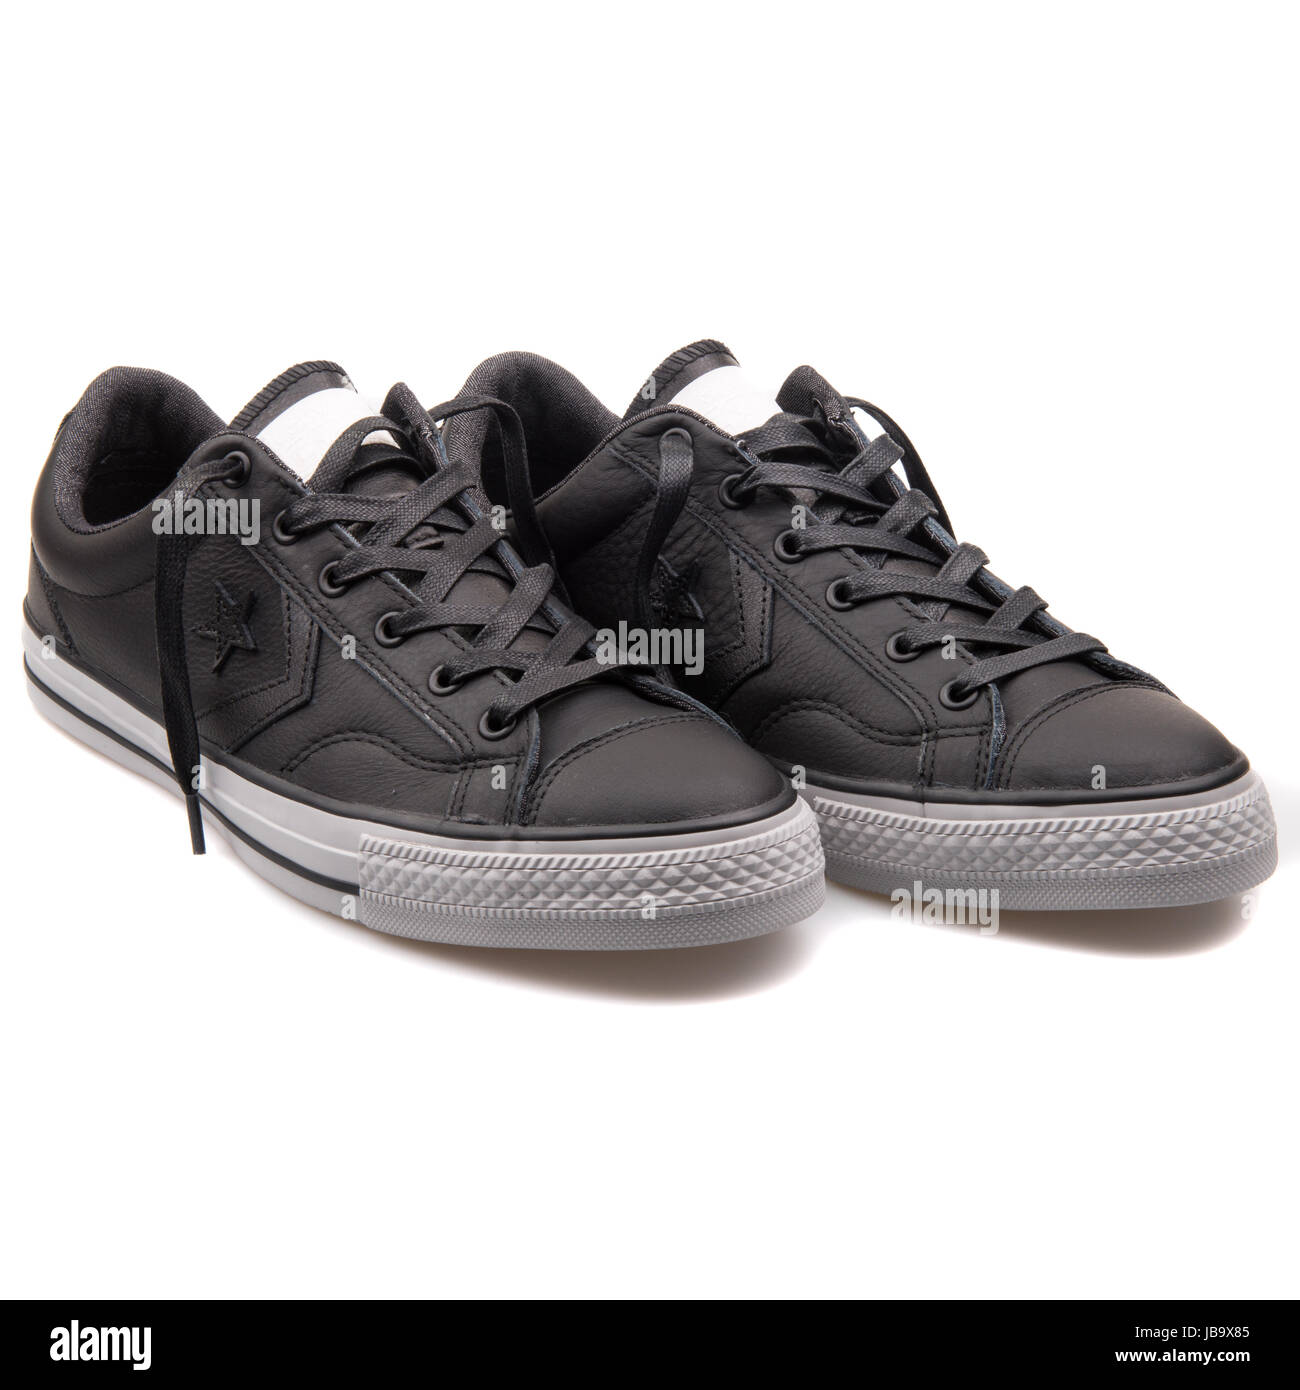 9bd4058a9f1d Converse Chuck Taylor All Star Player OX Black Leather Unisex Shoes -  149765C